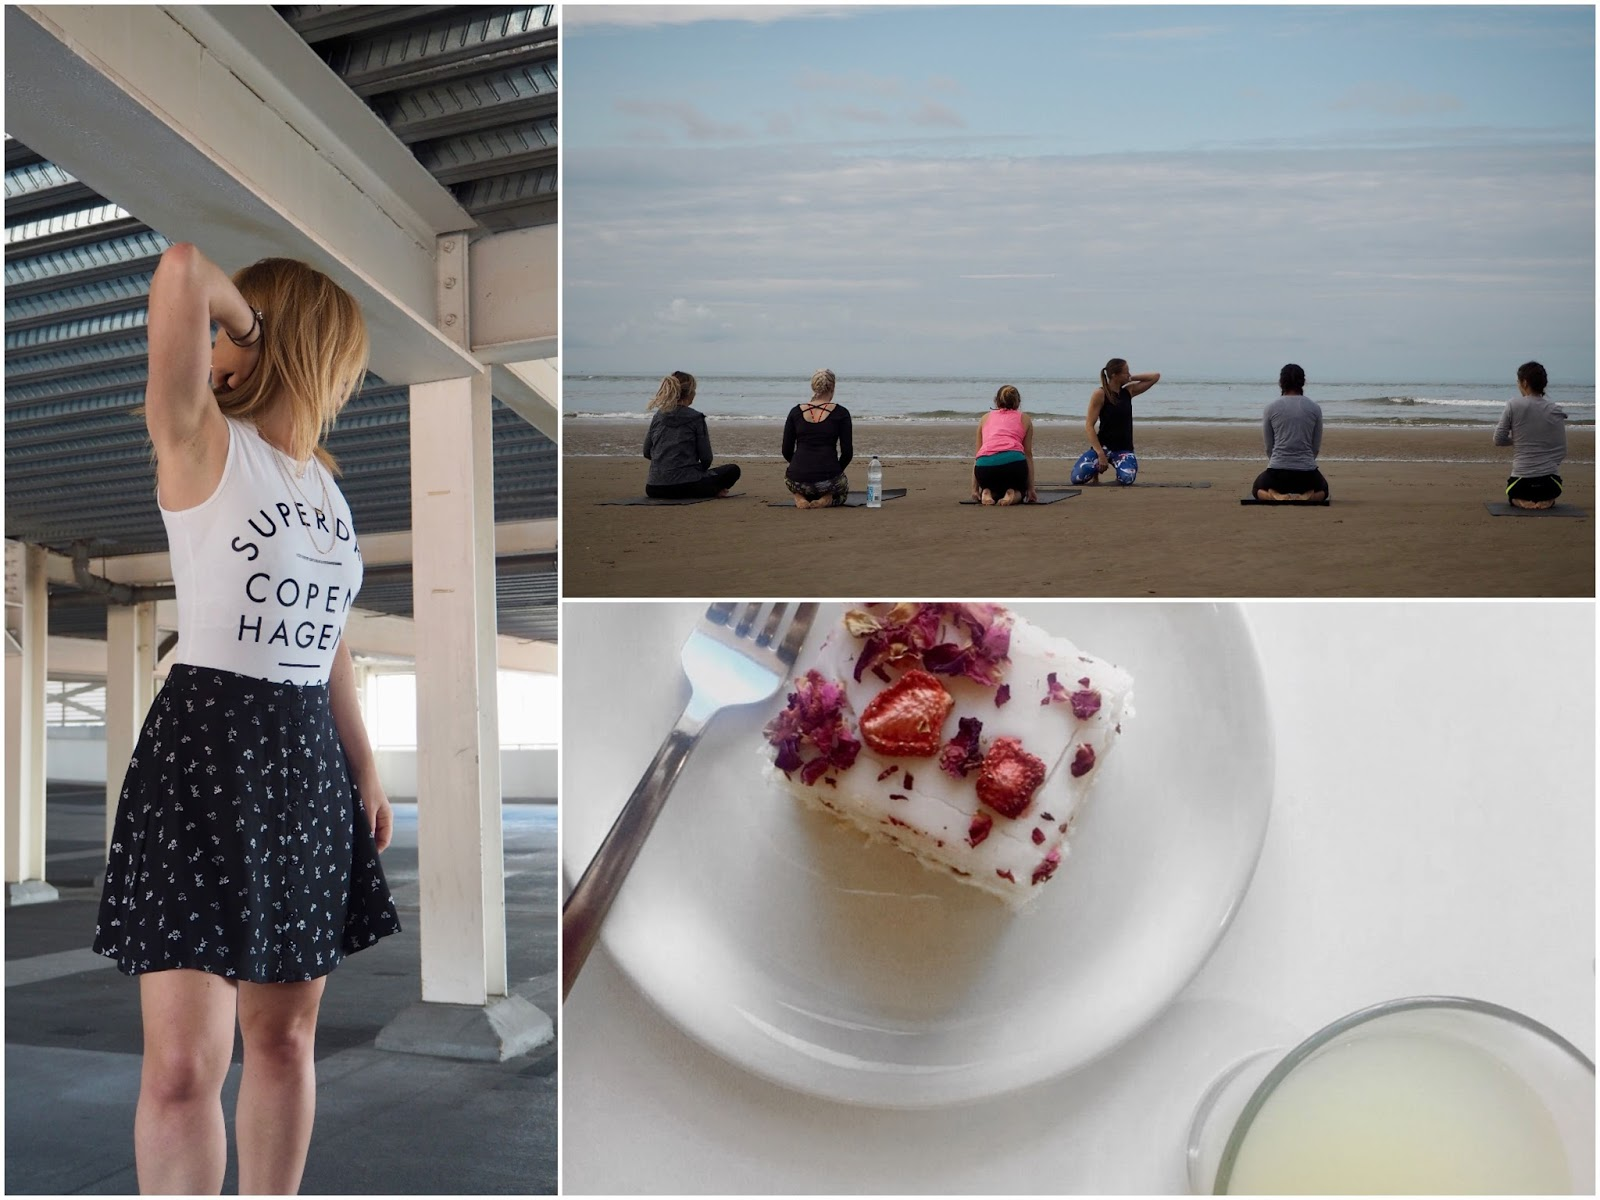 2017-thread-treads-treats-august-superdry-fashion-bloggers-beach-yoga-wales-haven-cake-coffee-break-img